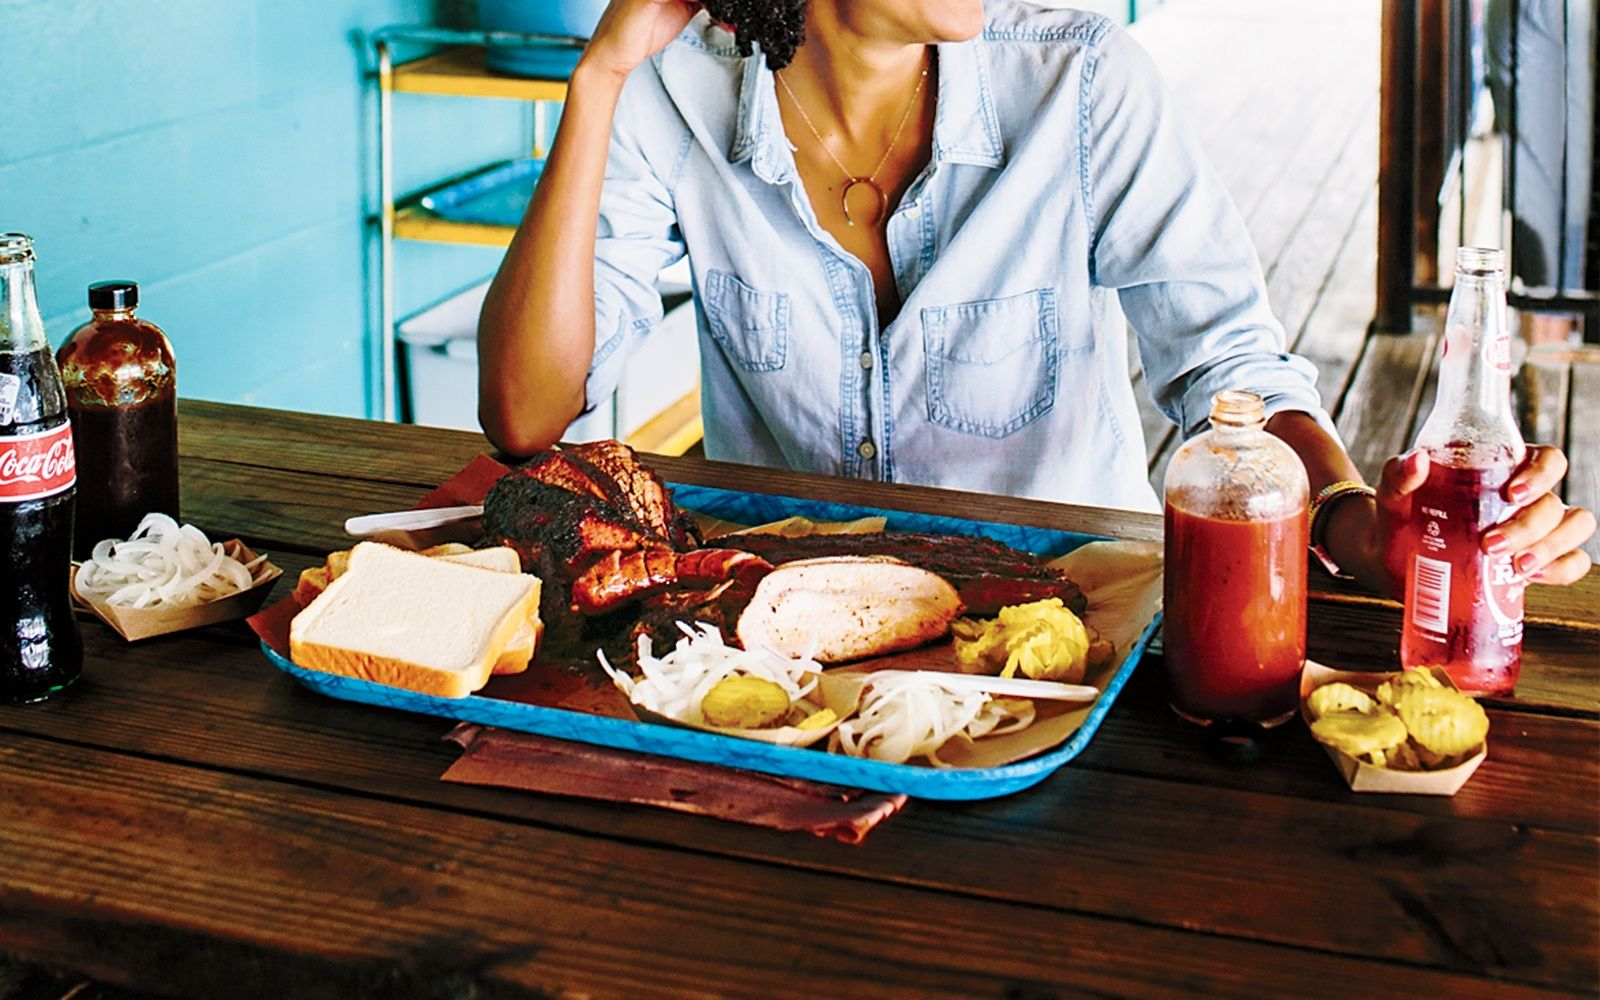 Austin, Dallas and Houston all make it into this list of best cities for foodies